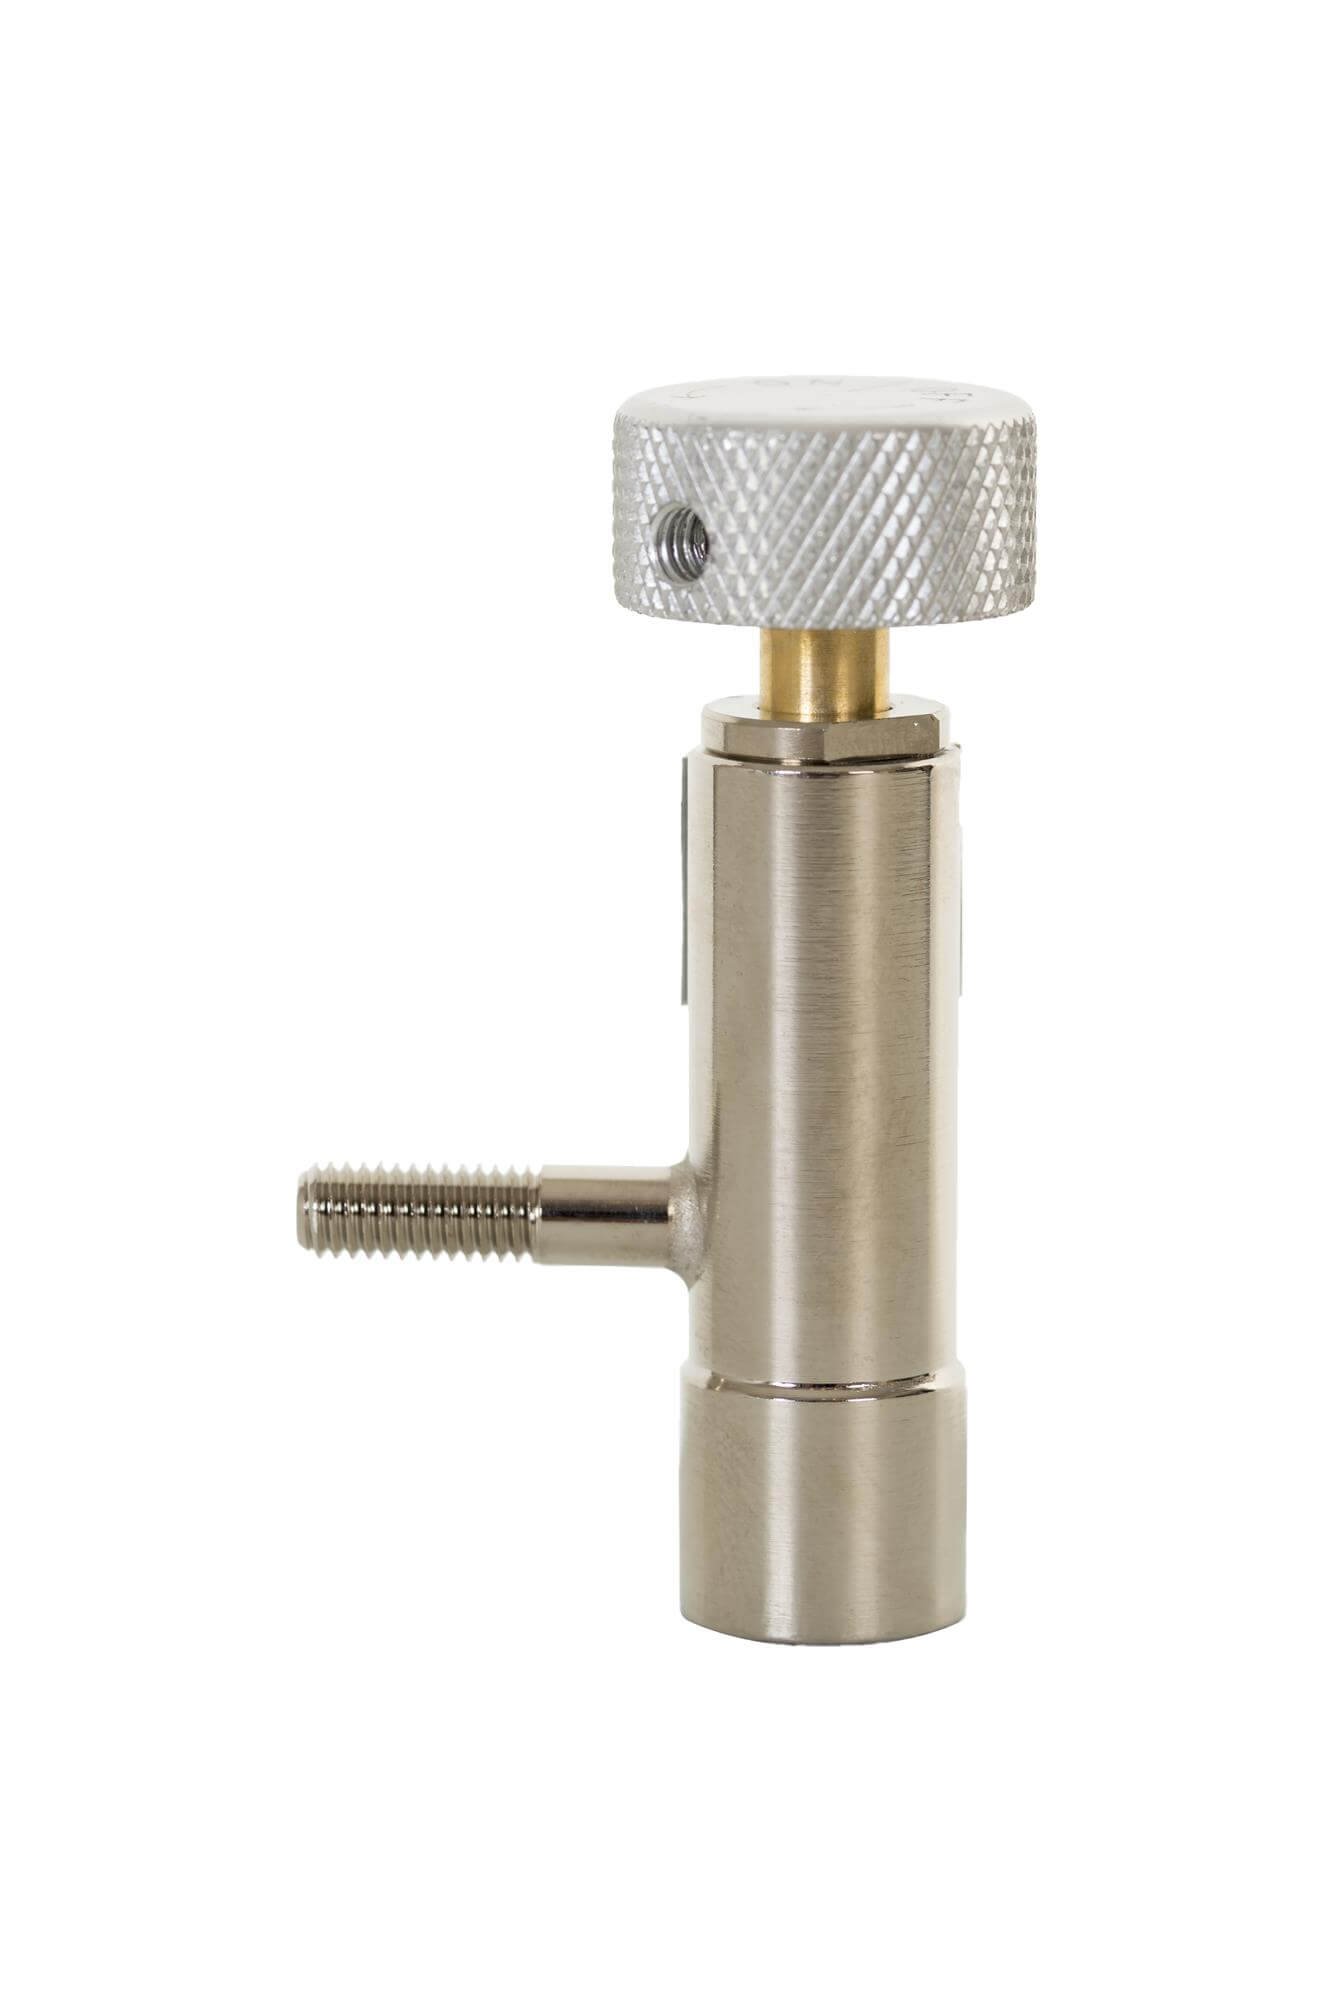 Brass control valve with Threaded outlet